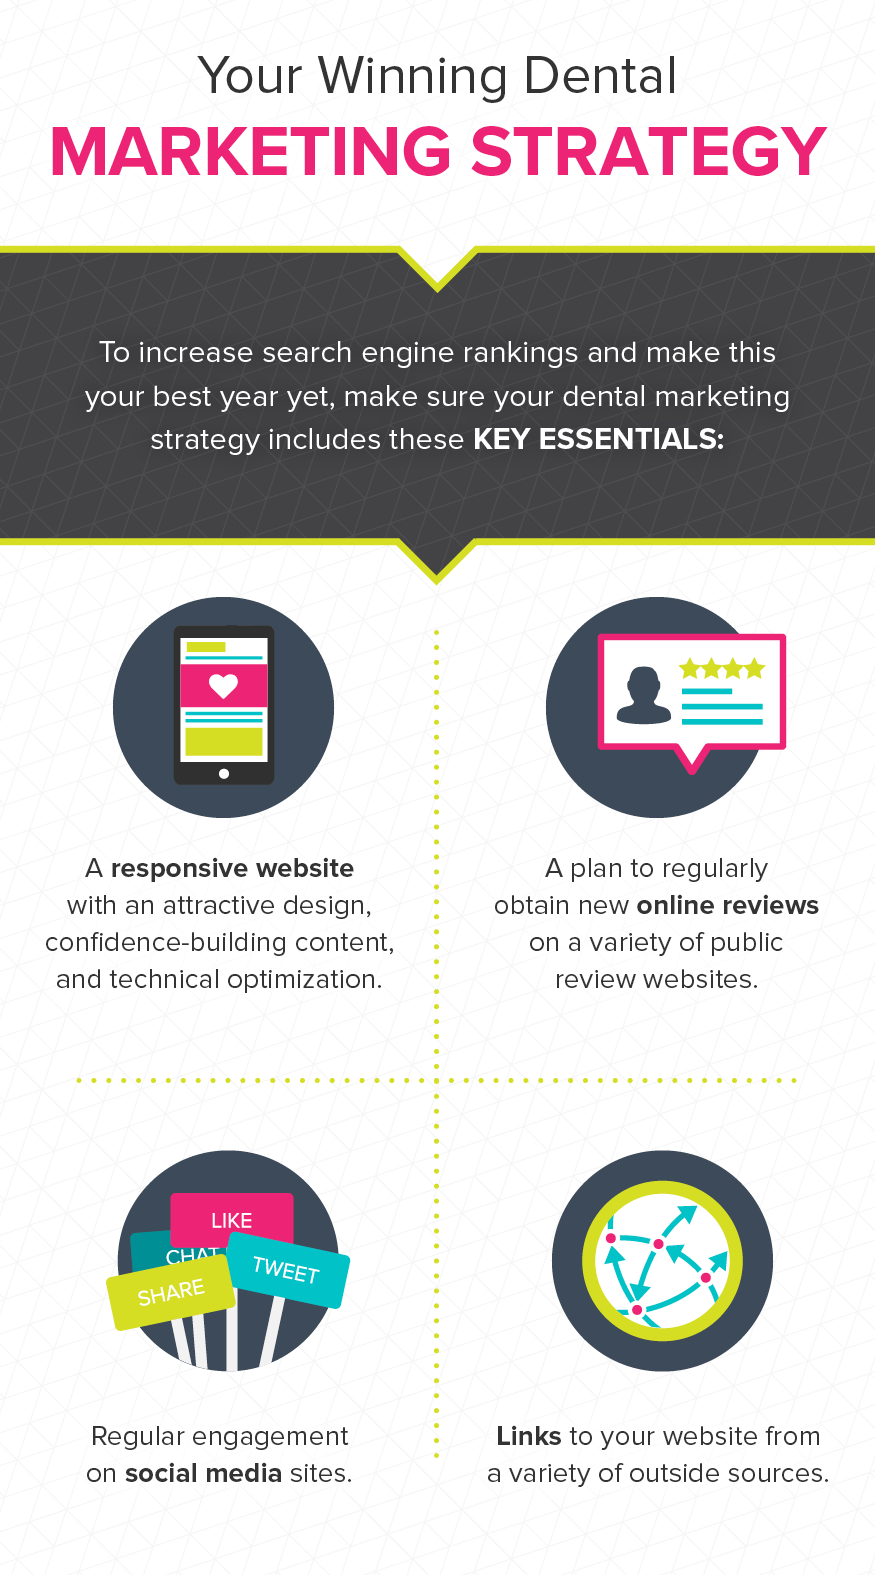 Elements of a dental marketing strategy should include a responsive website, reviews, social media, and links